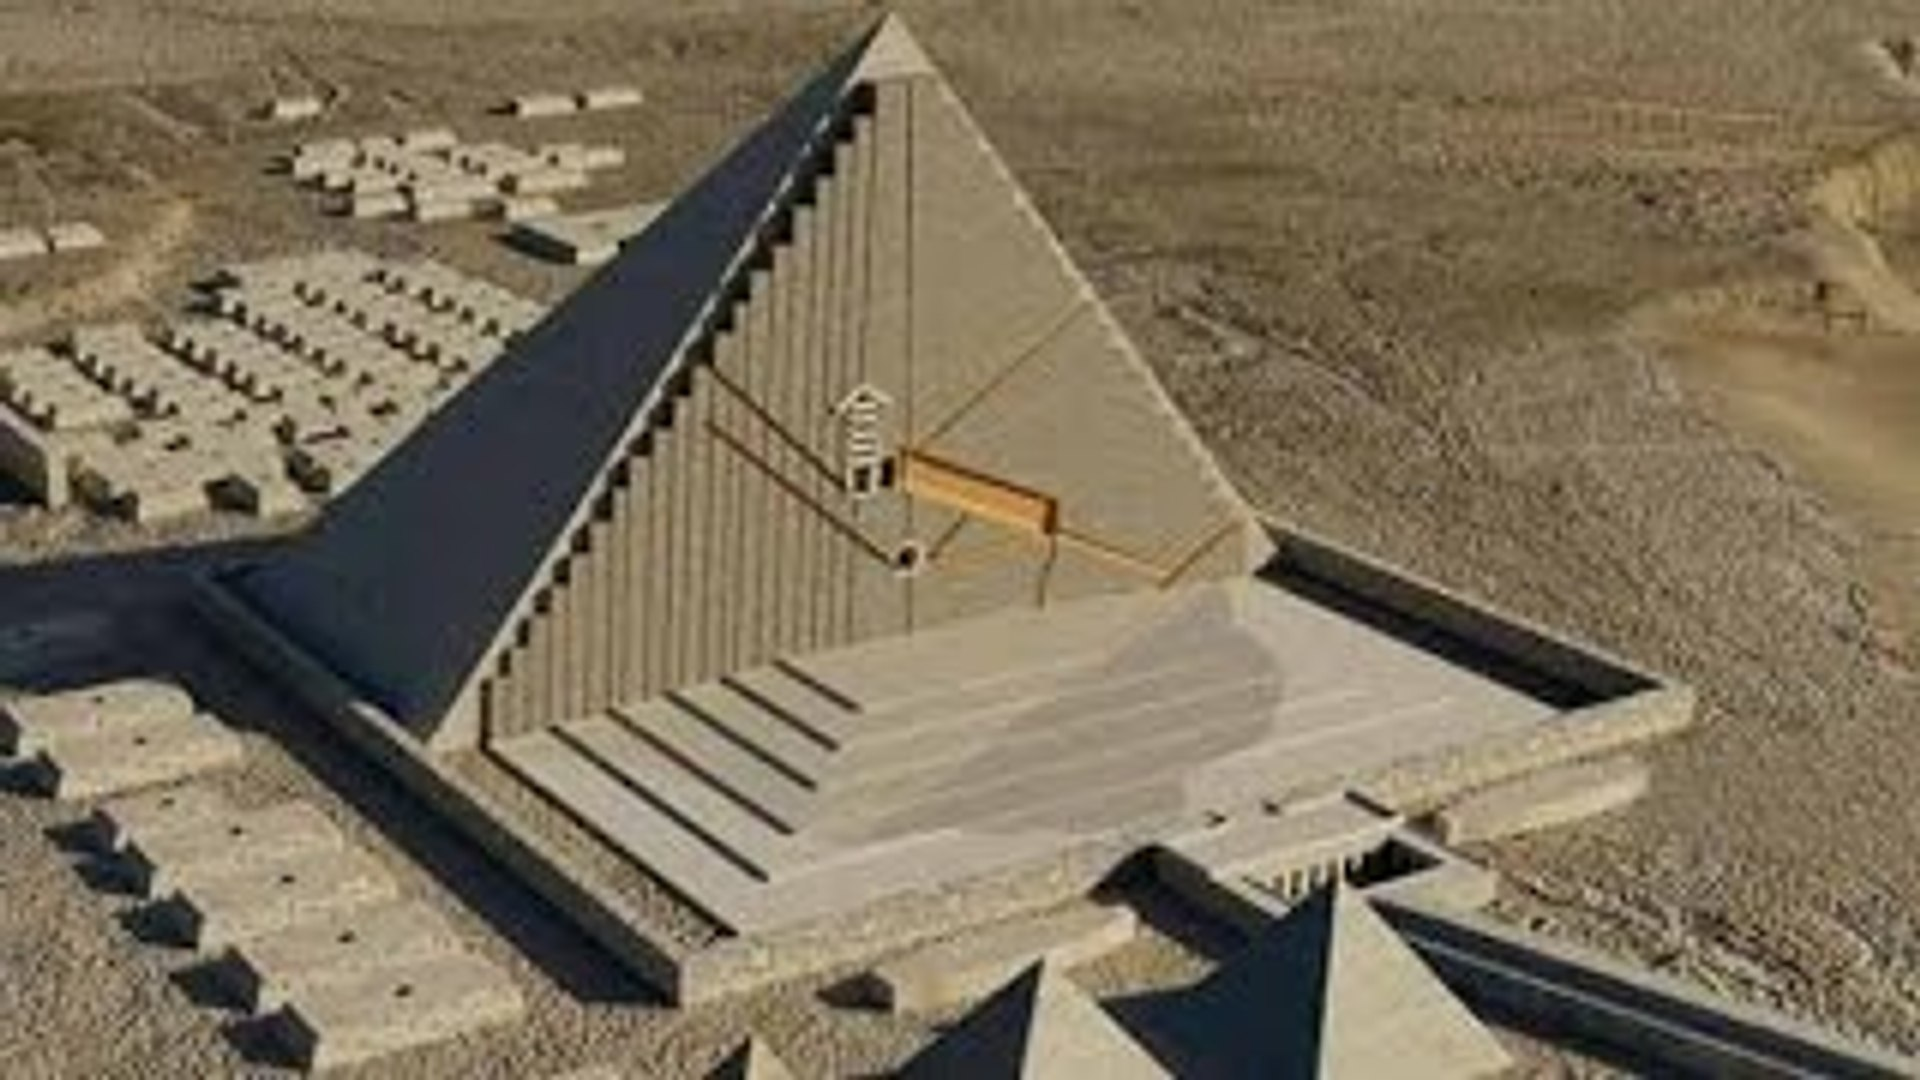 ANCIENT EGYPT'S Advanced Engineering Structures - Documentary Films